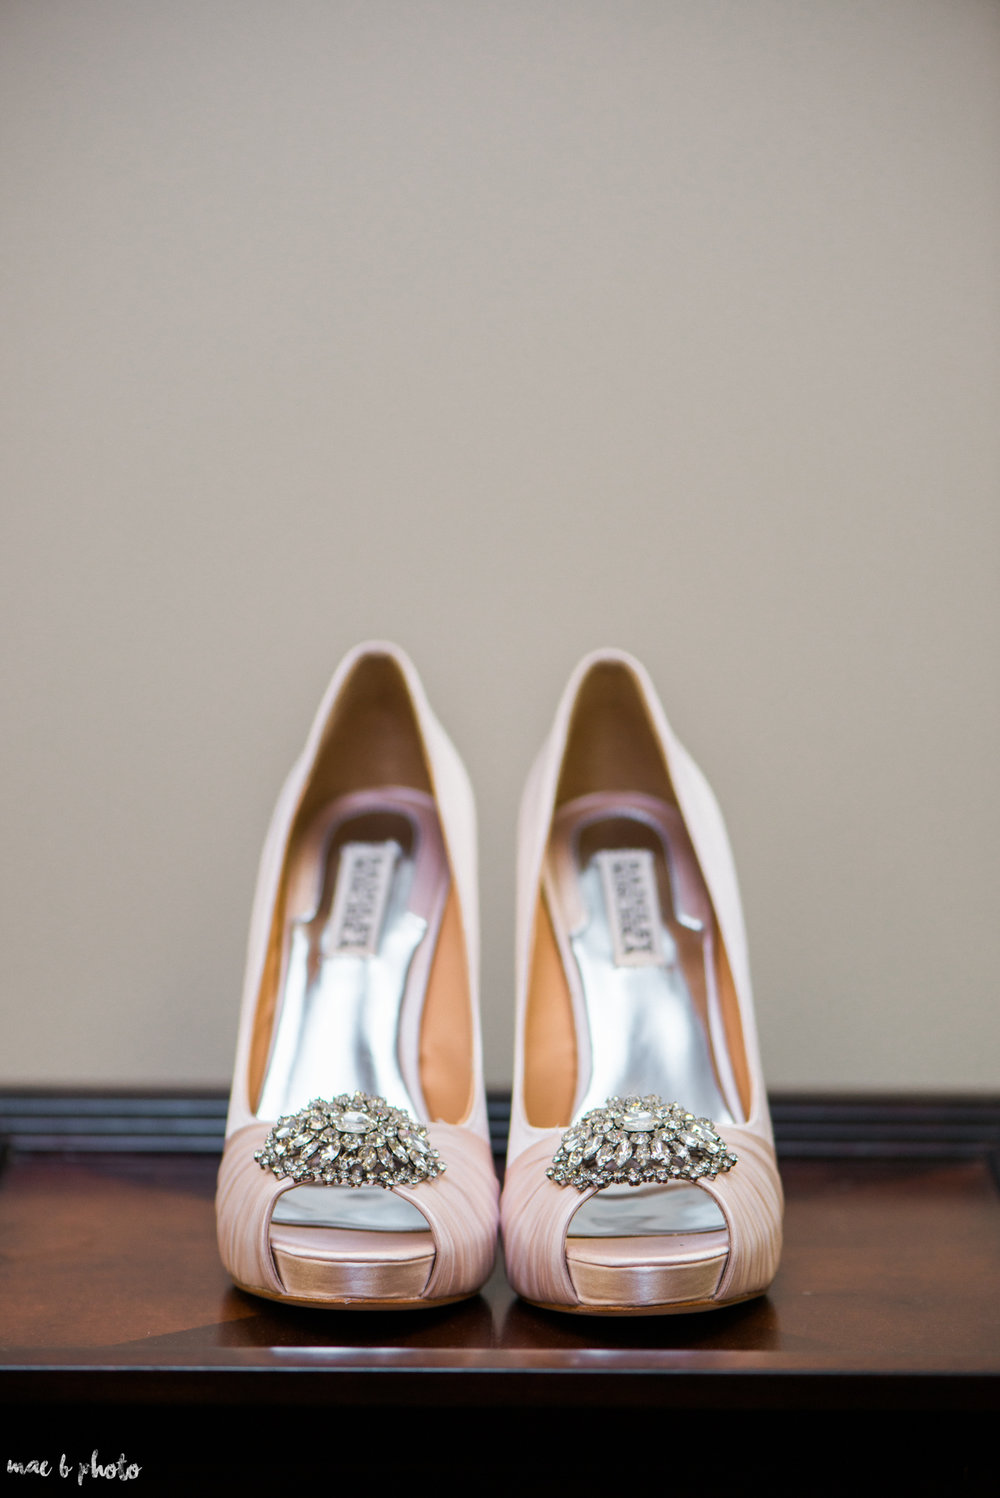 Mary Catherine & Chad's Elegant and Intimate Country Club Wedding at Squaw Creek in Youngstown Ohio by Mae B Photo-15.jpg